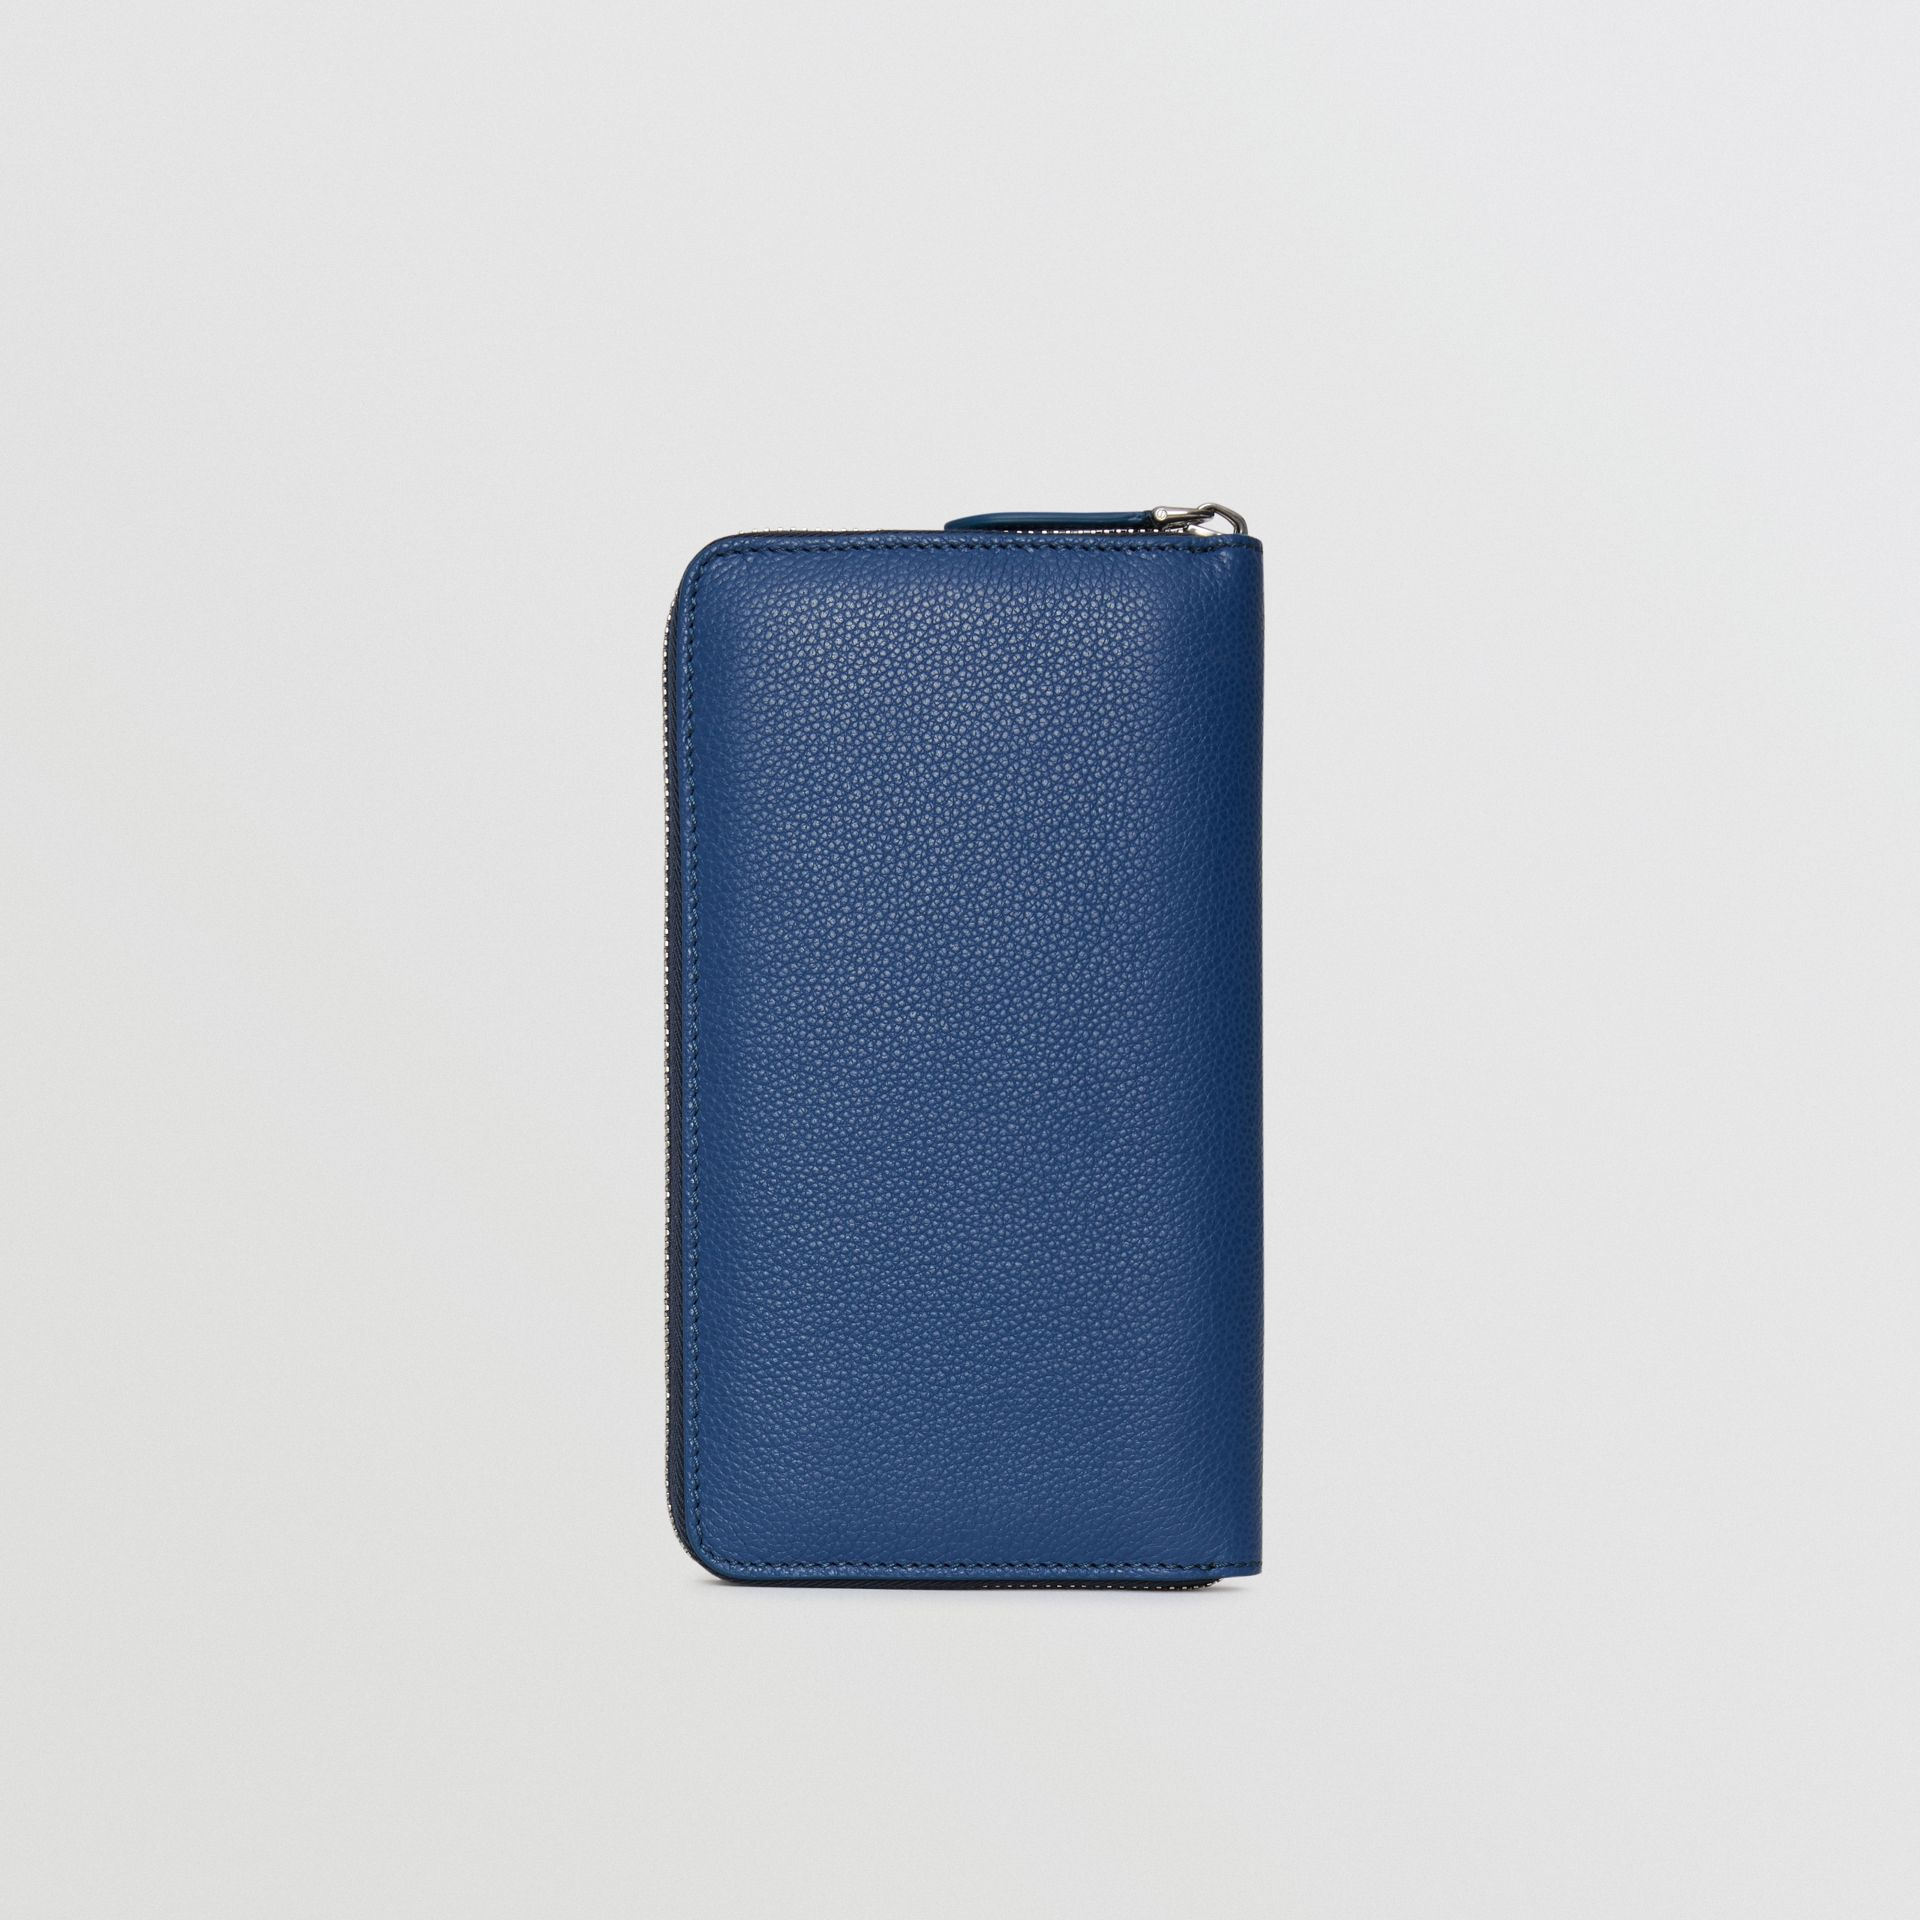 Grainy Leather Ziparound Wallet in Bright Ultramarine - Men | Burberry - gallery image 5